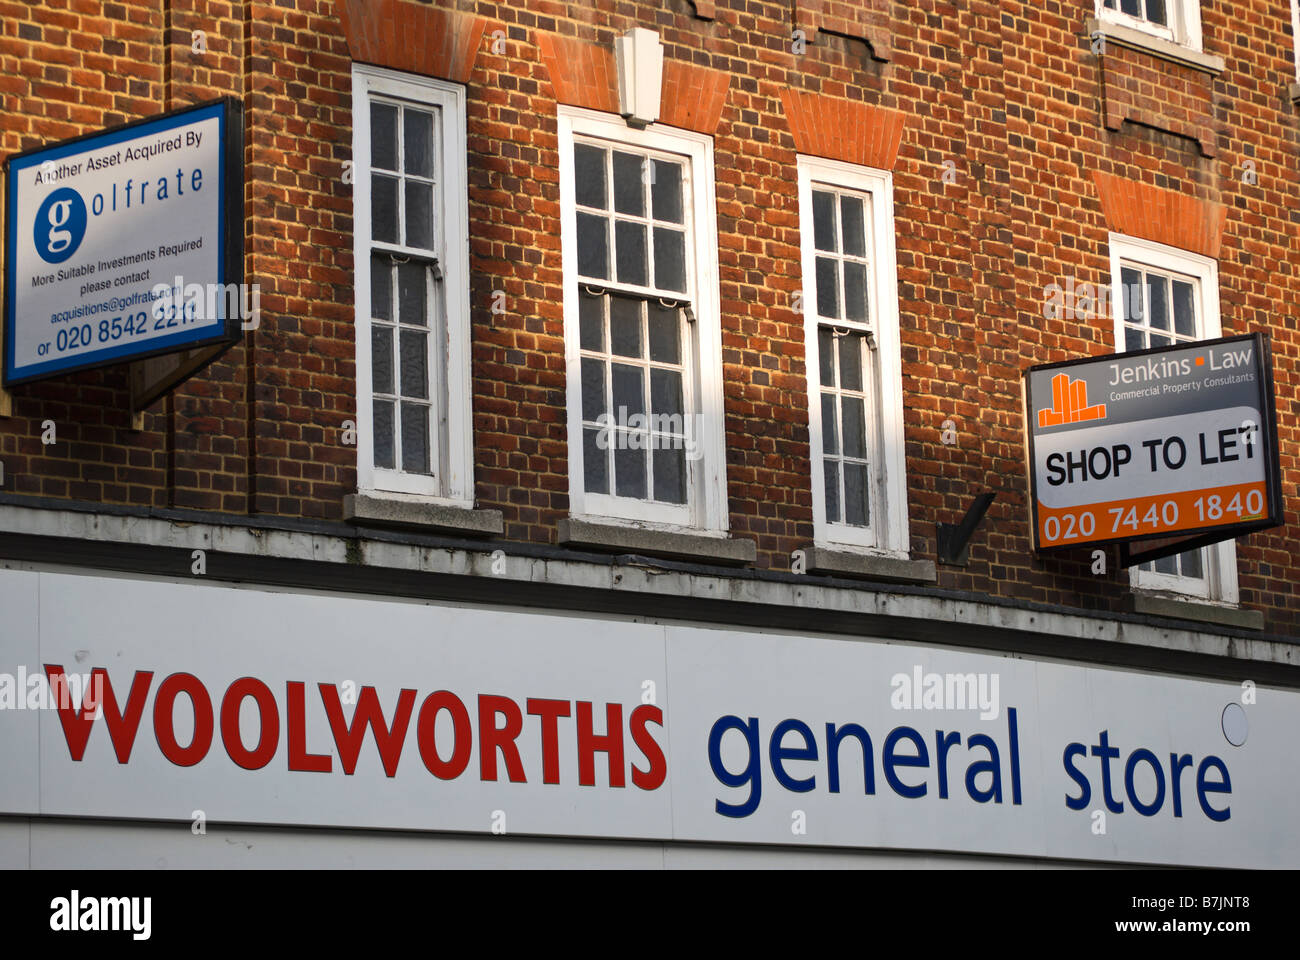 sign for woolworths general store beneath shop to let sign and a sign for the property company golfrate, in twickenham, - Stock Image